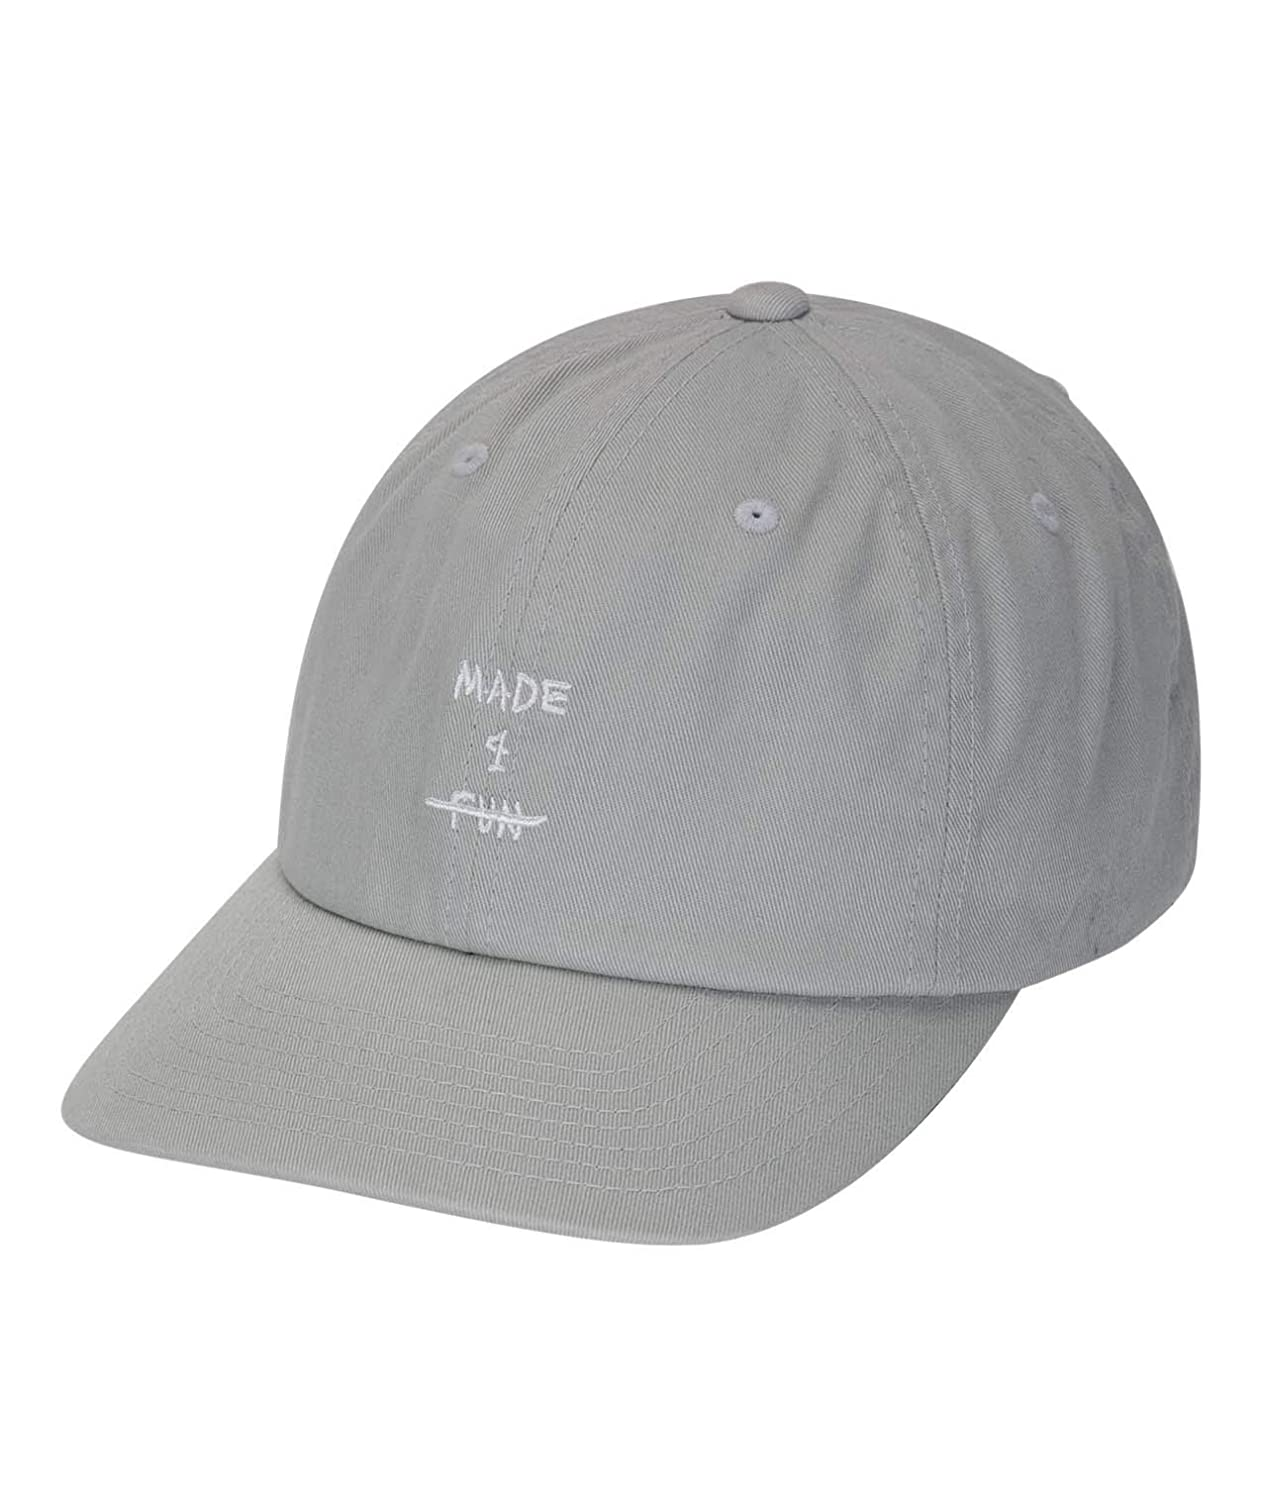 Hurley W MADE4FUN Dad Hat Gorras/Sombreros, Mujer, Light Grey, 1SIZE: Amazon.es: Deportes y aire libre